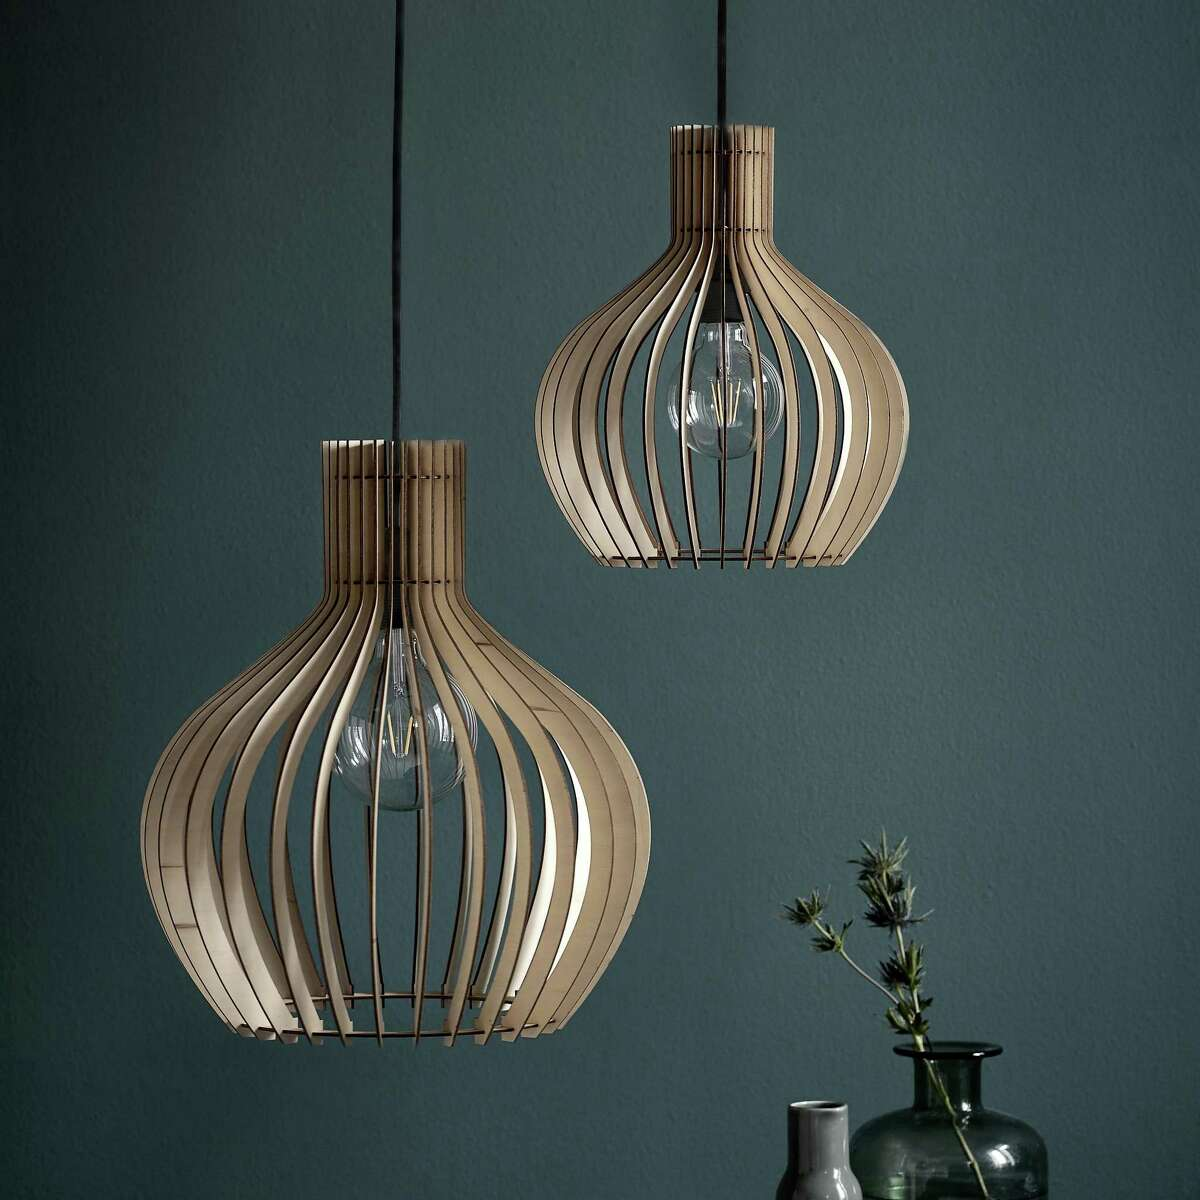 Gather a group: A by Amara's Groa wood pendant light casts beautiful shadows when light beams through its slatted wooden shade. The 14-inch-long fixture holds a single 60-watt bulb, so a cluster may be in order. $118; amara.com